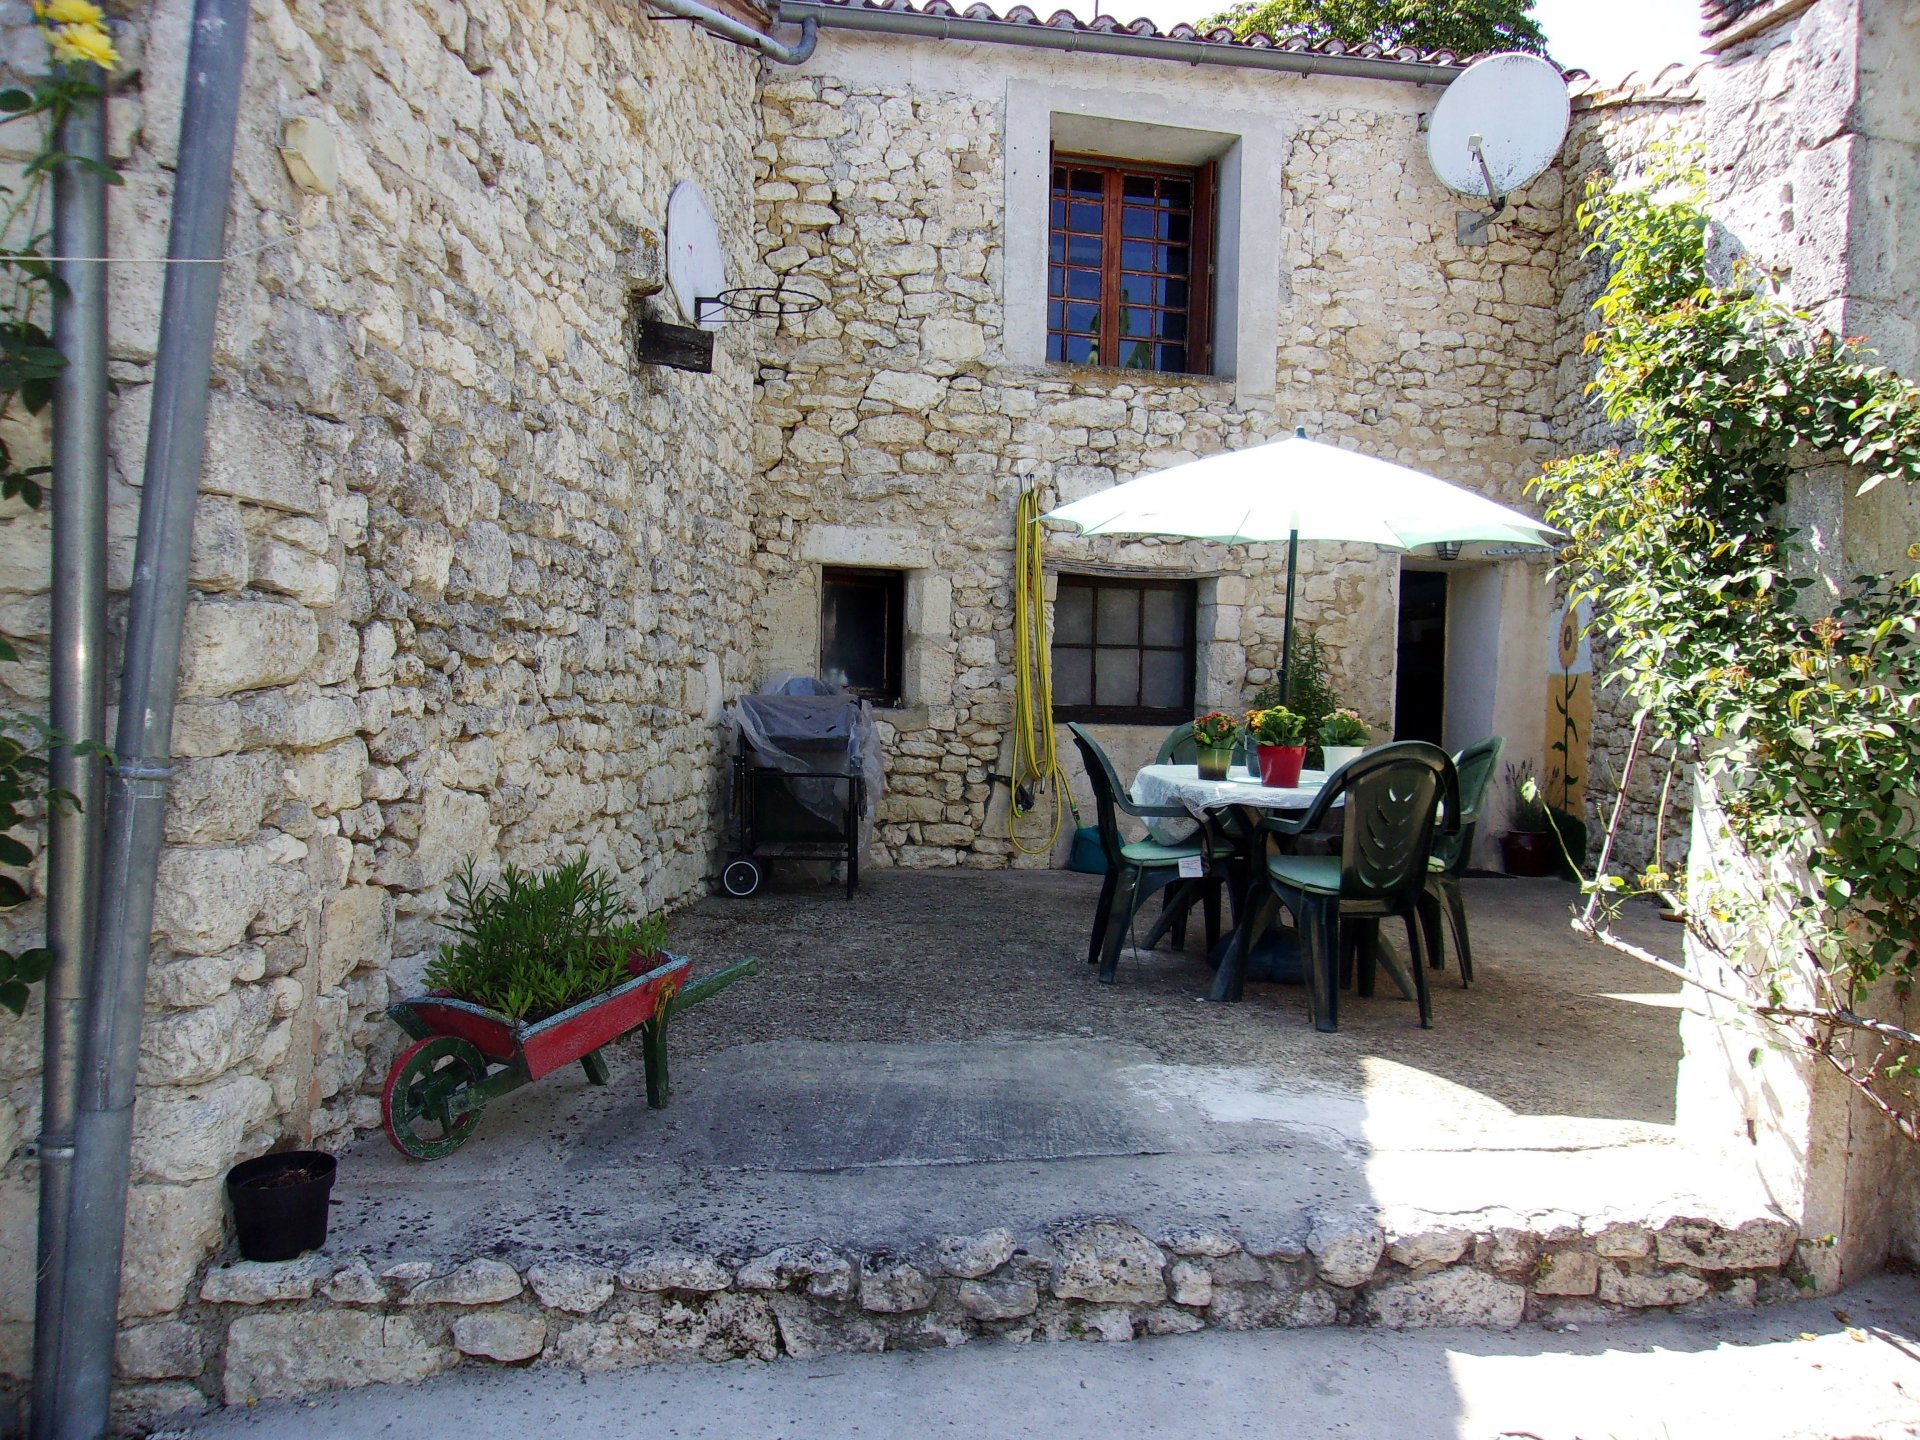 Elegant 3 bedroom stone village house with barn conversion, garden and courtyard